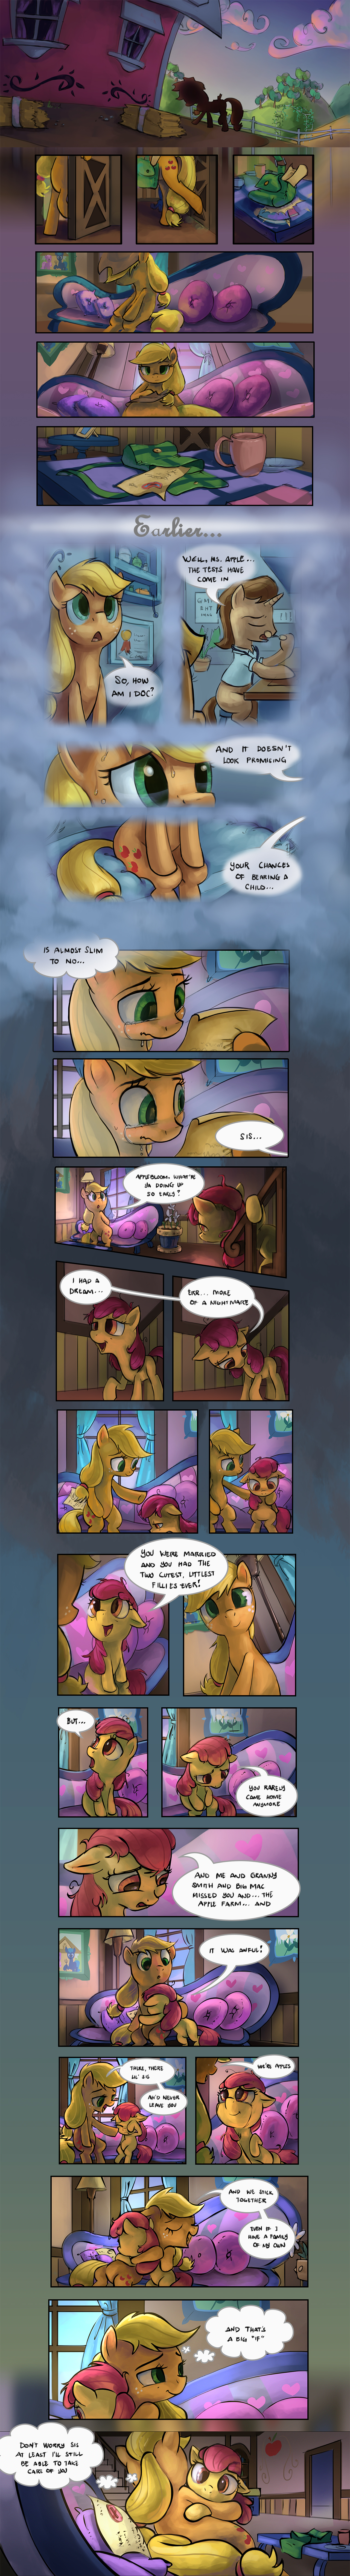 JTM - An Apple Without Seeds by Ruffu